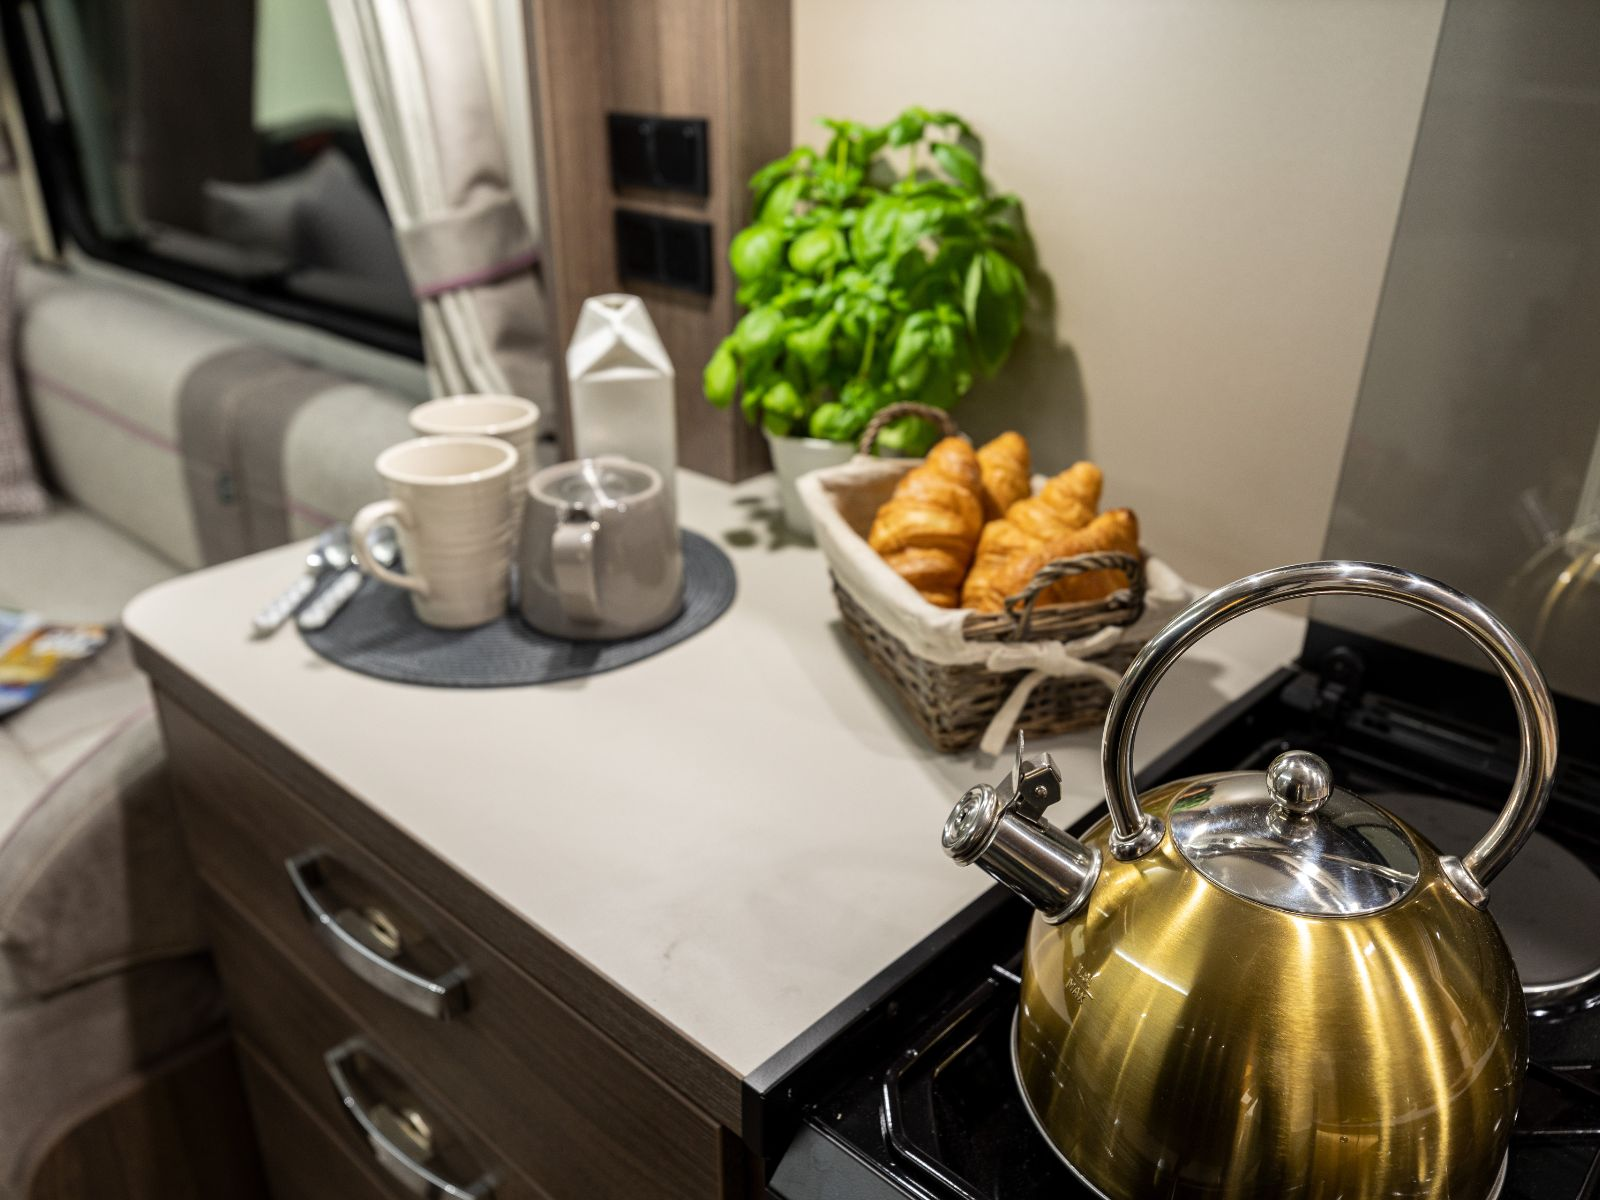 Kettle on stove top with assortment of food and cups on counter top'